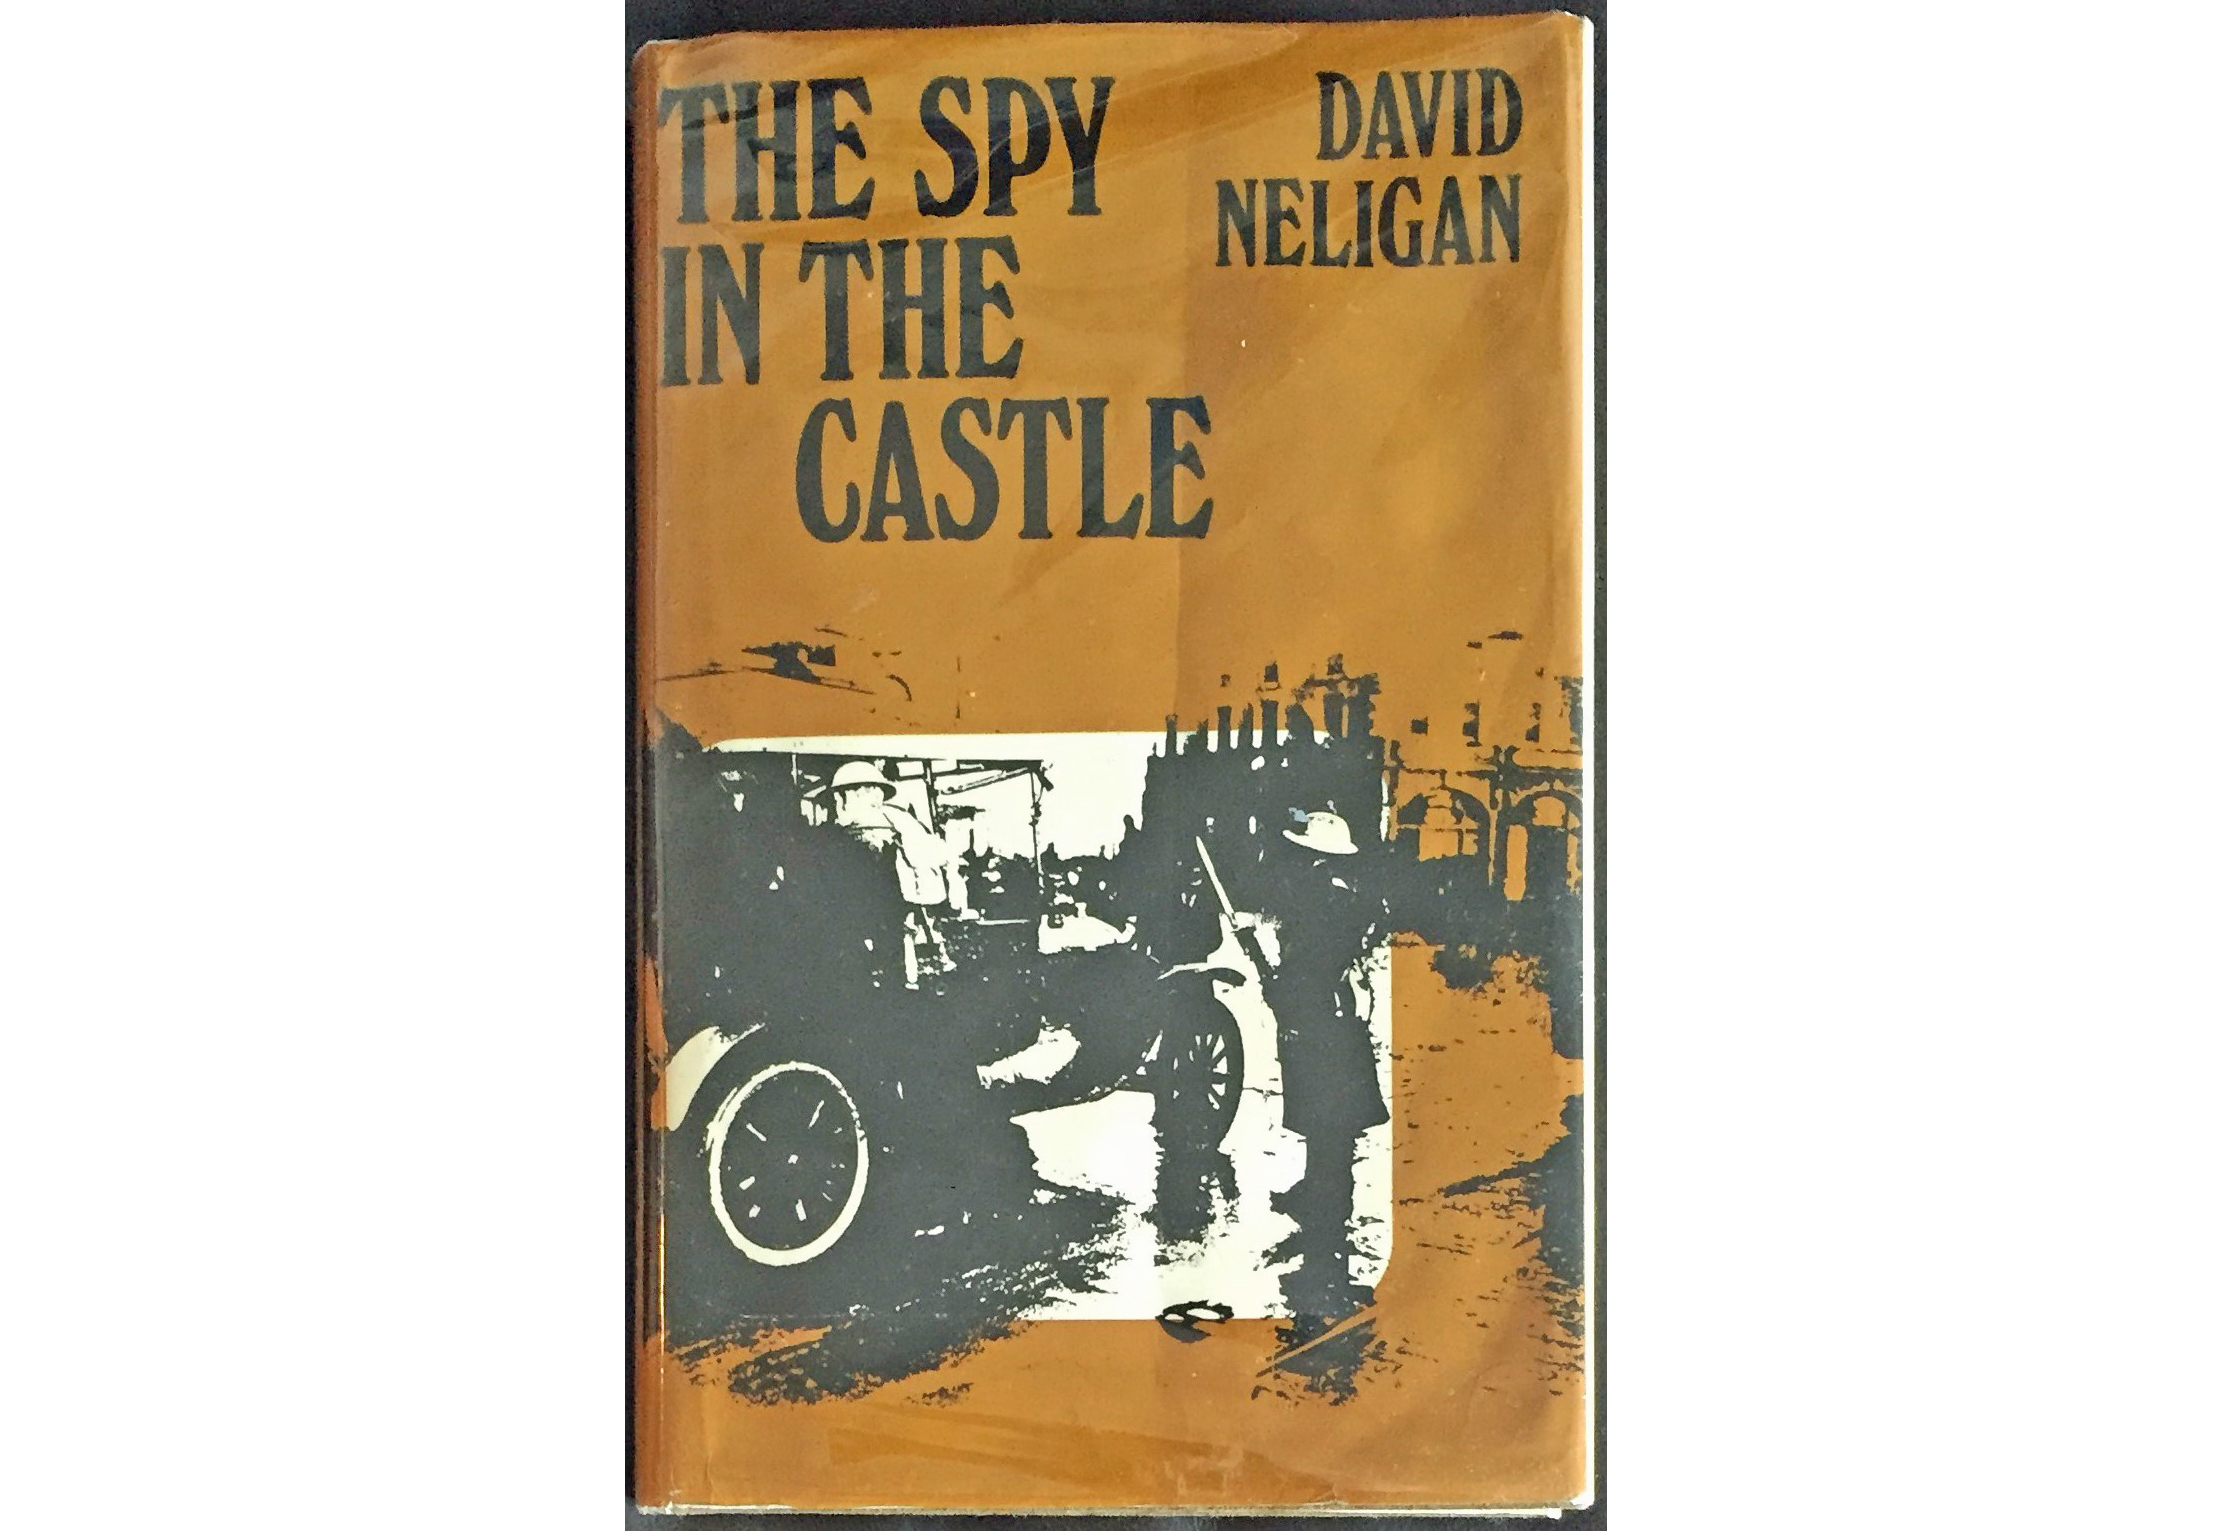 The cover of Neligan's book, The Spy in The Castle.